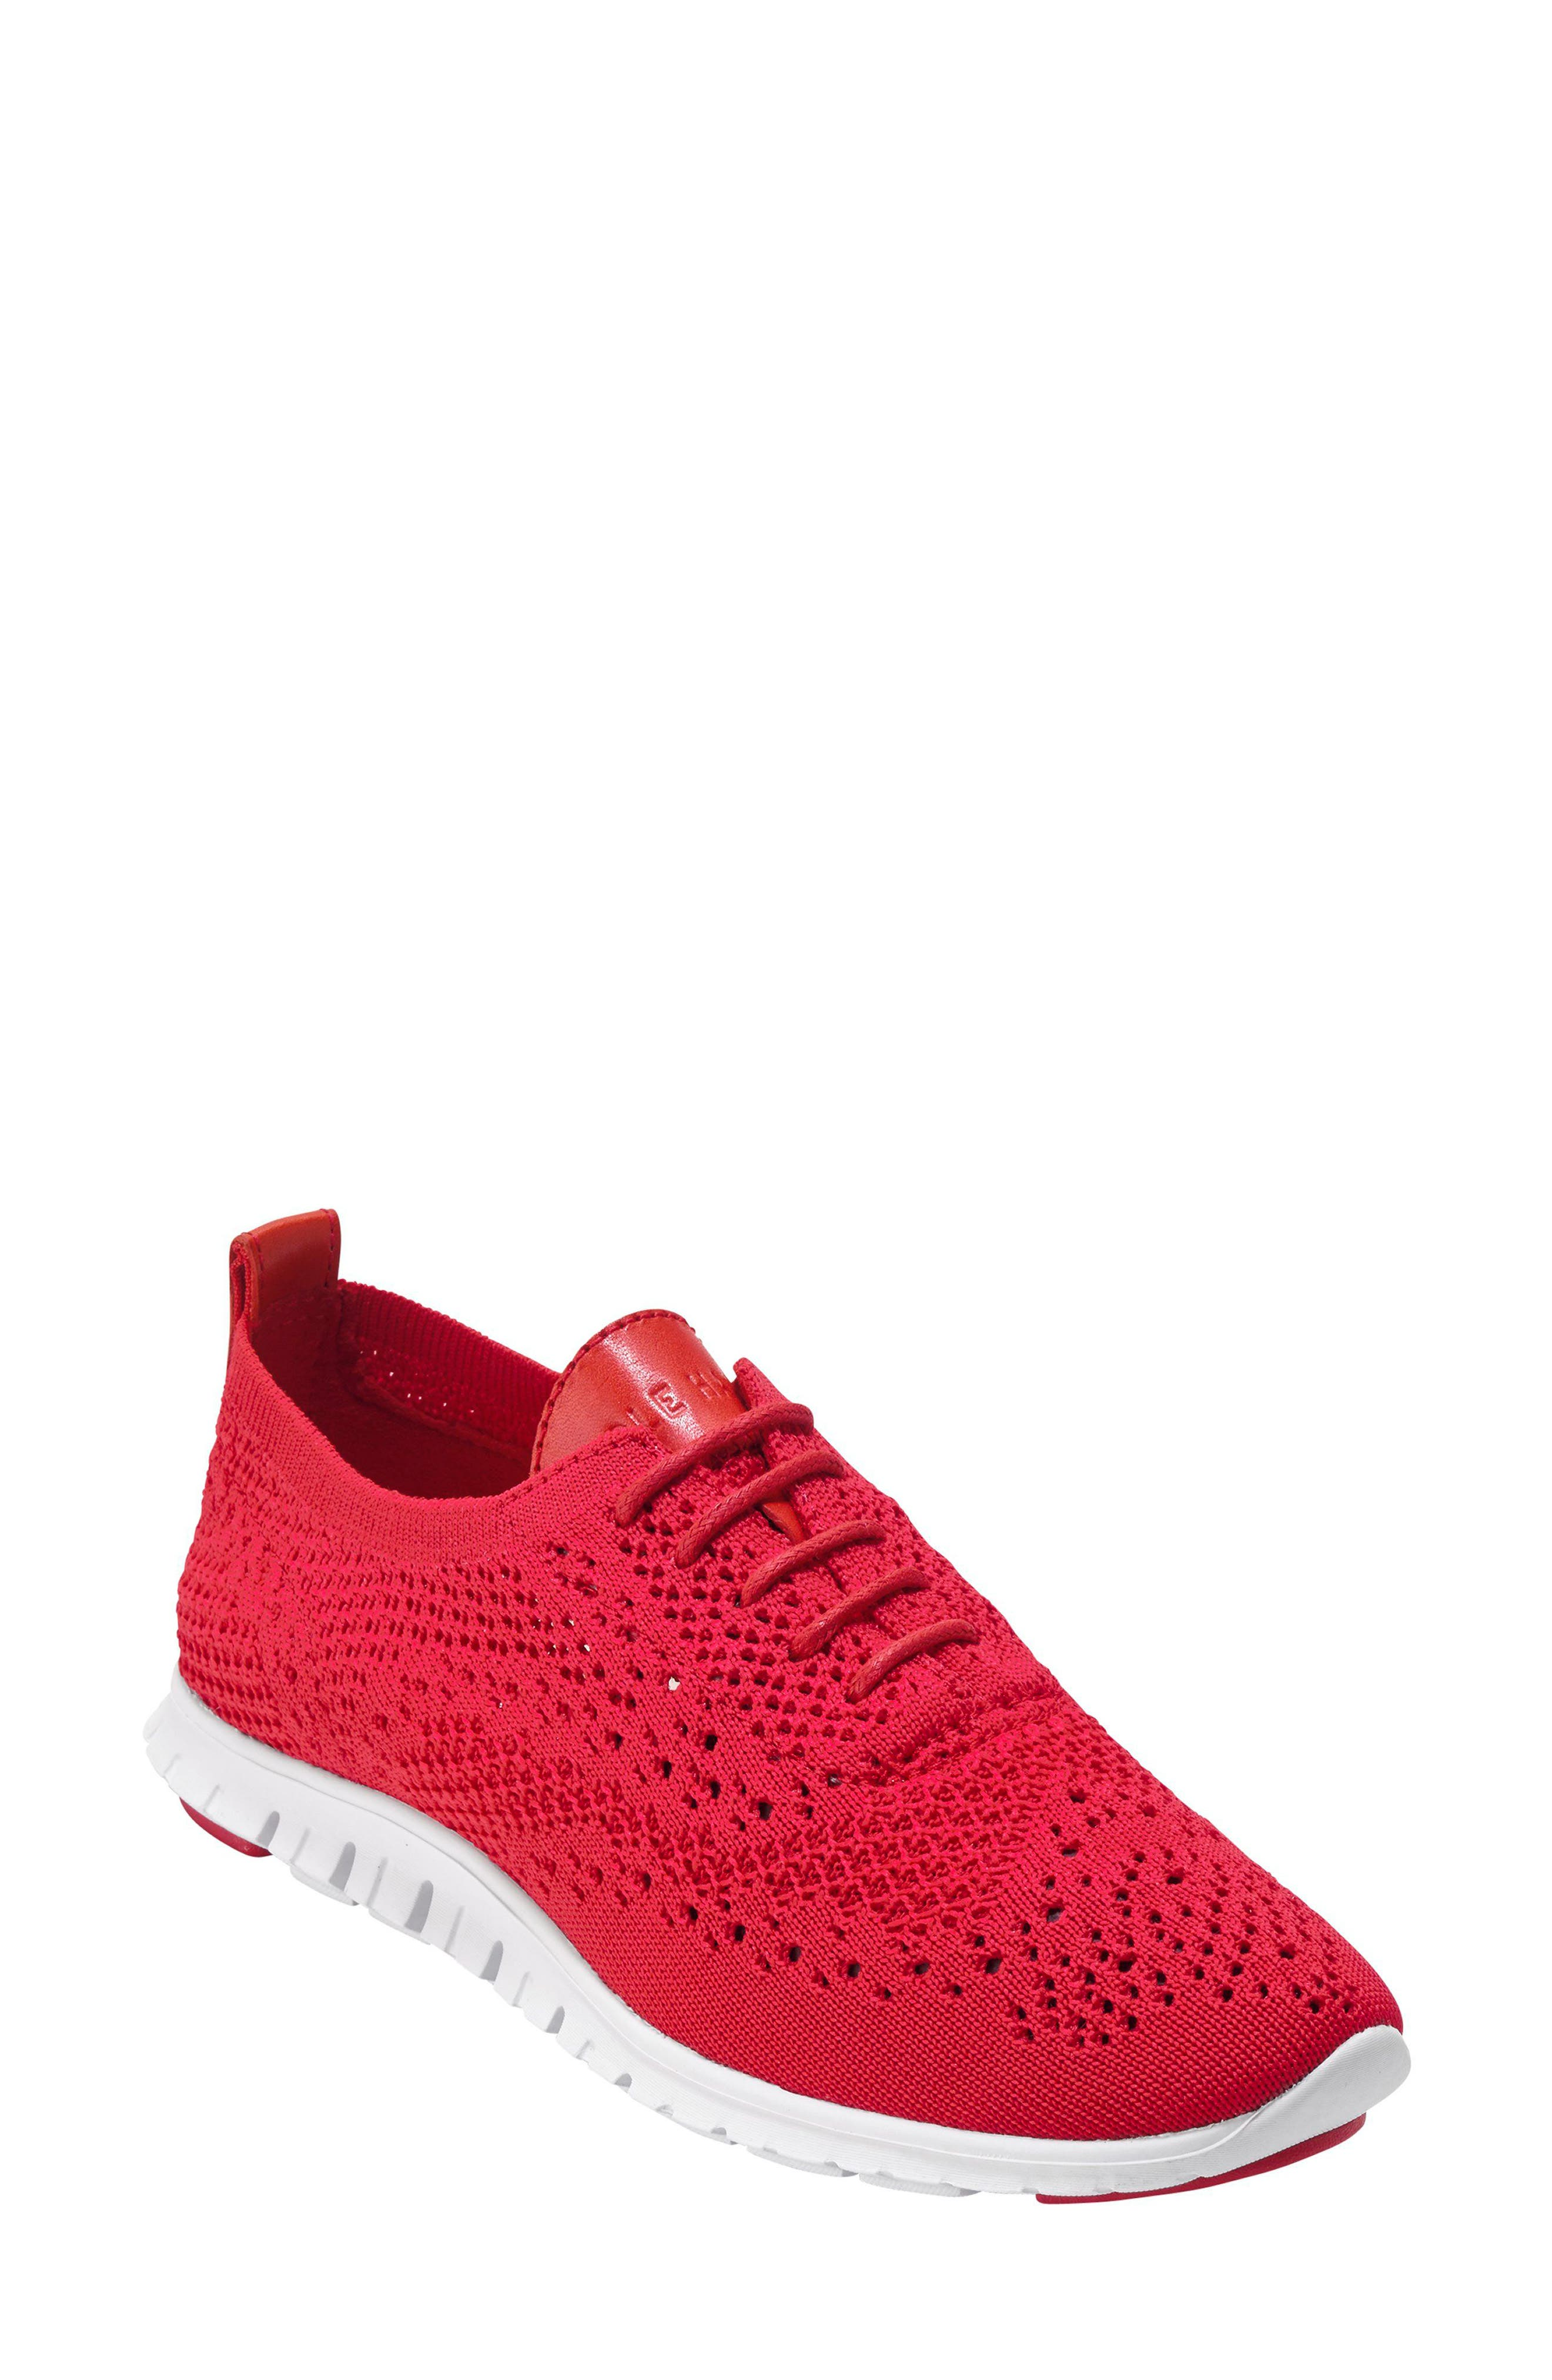 Alternate Image 1 Selected - Cole Haan ZeroGrand Stitchlite Oxford (Women)